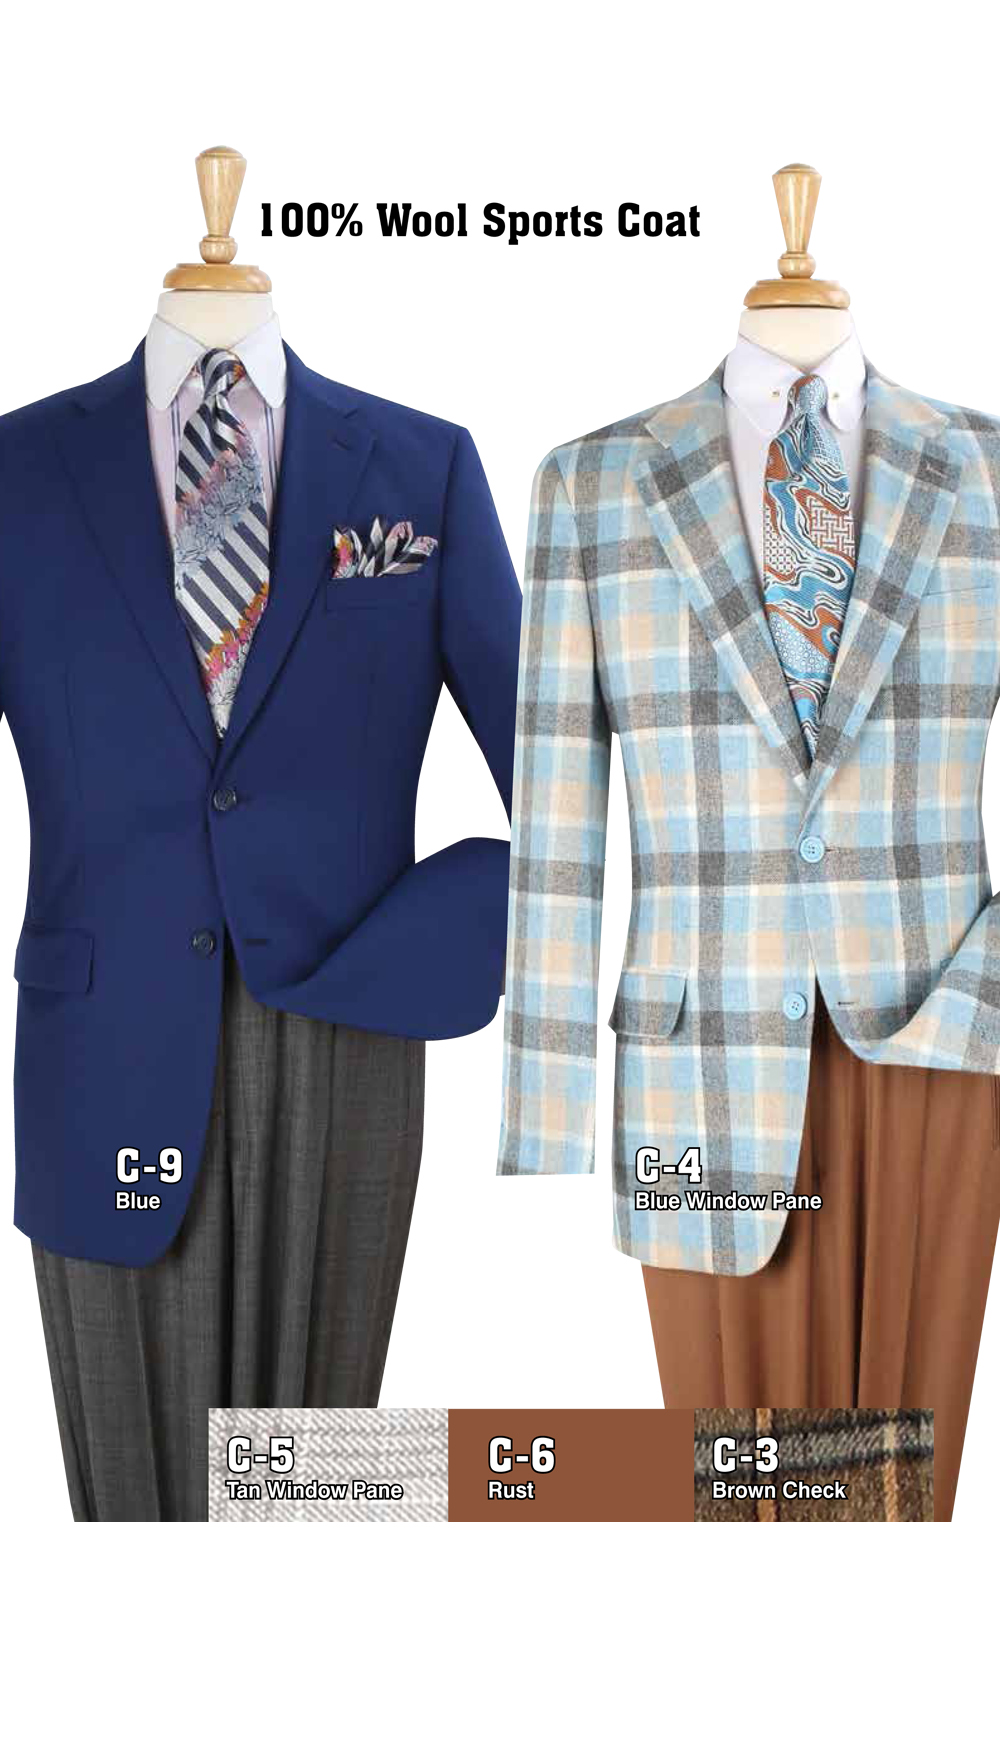 High Fashion Men Suits C-9